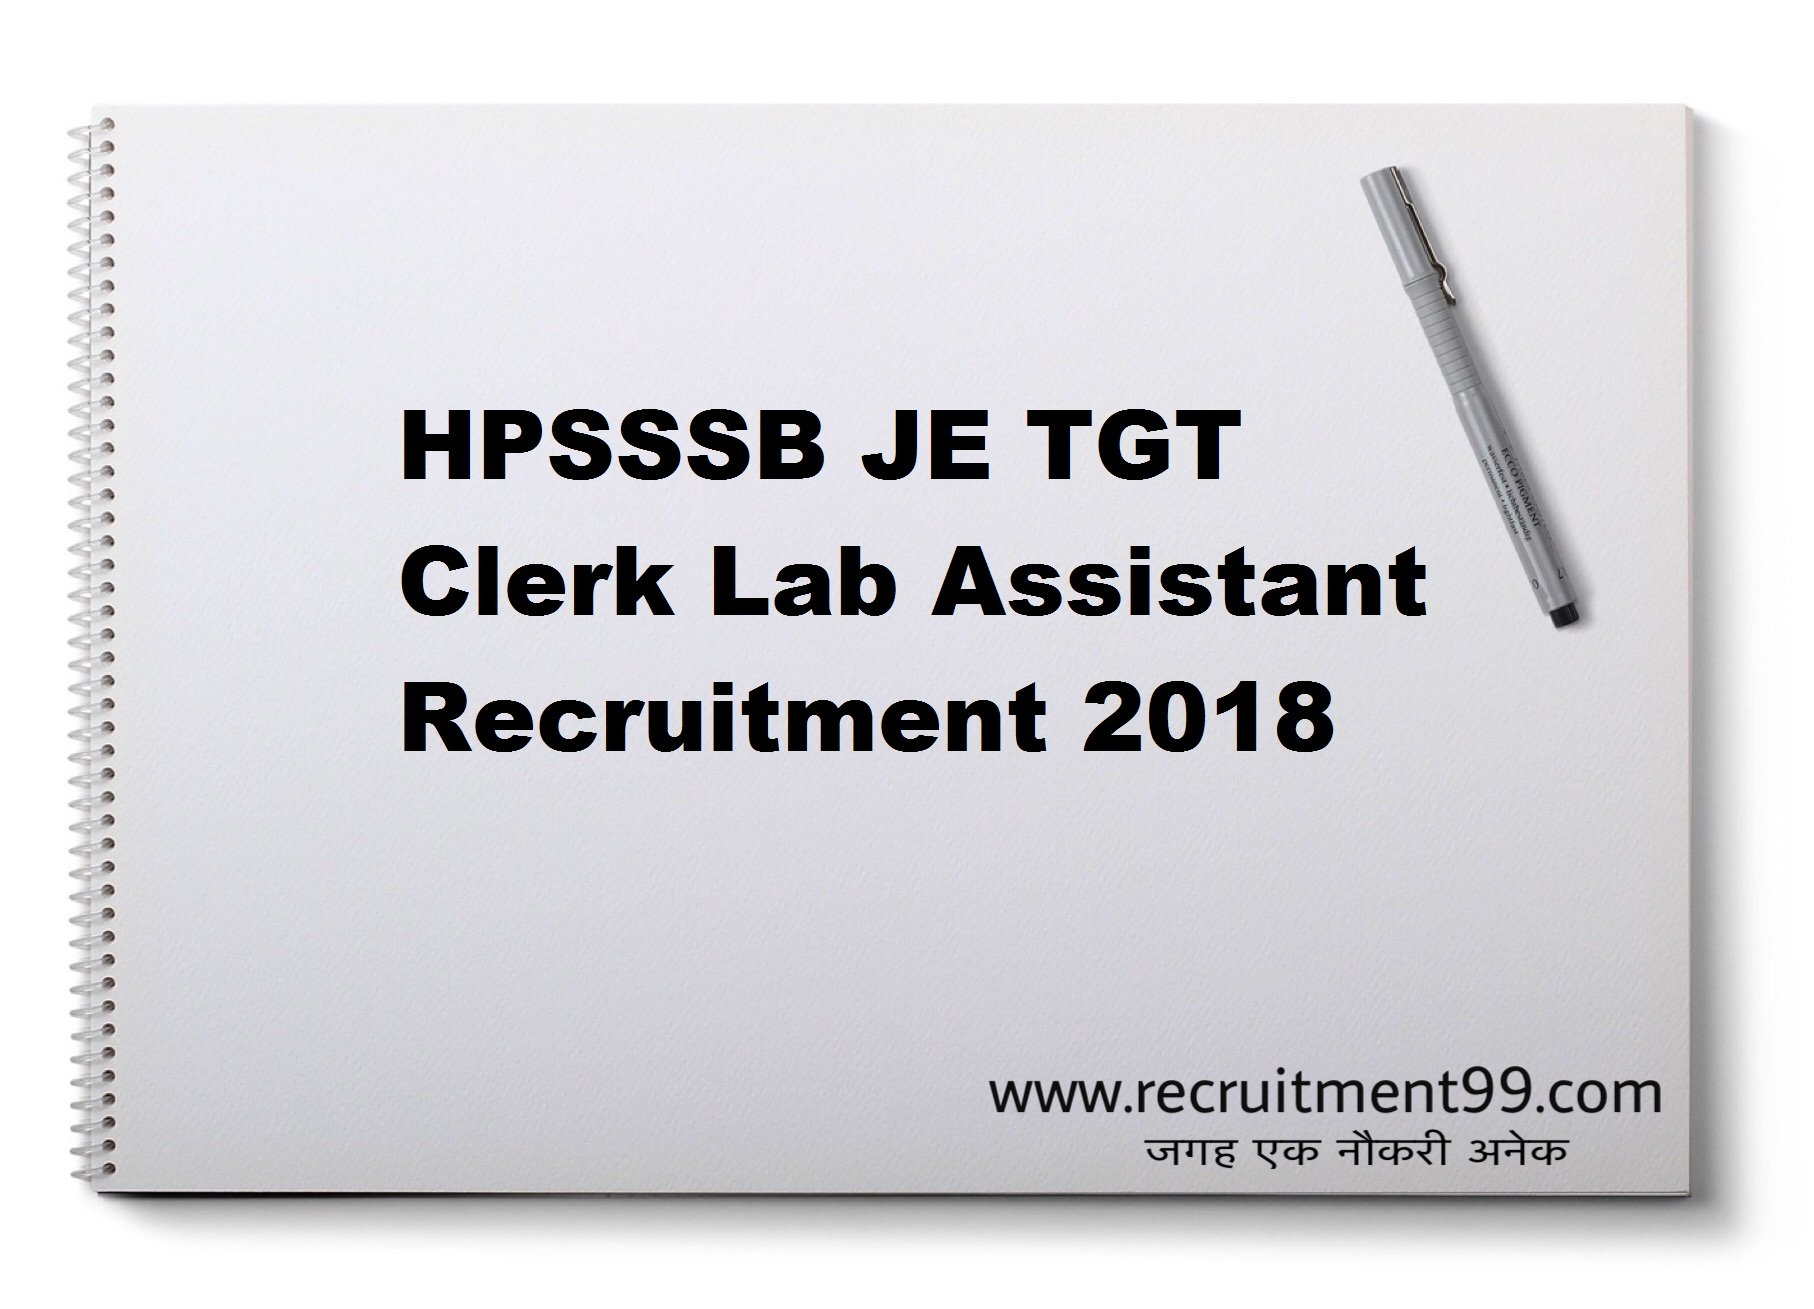 HPSSSB JE TGT Clerk Lab Assistant Recruitment Admit Card Result 2018